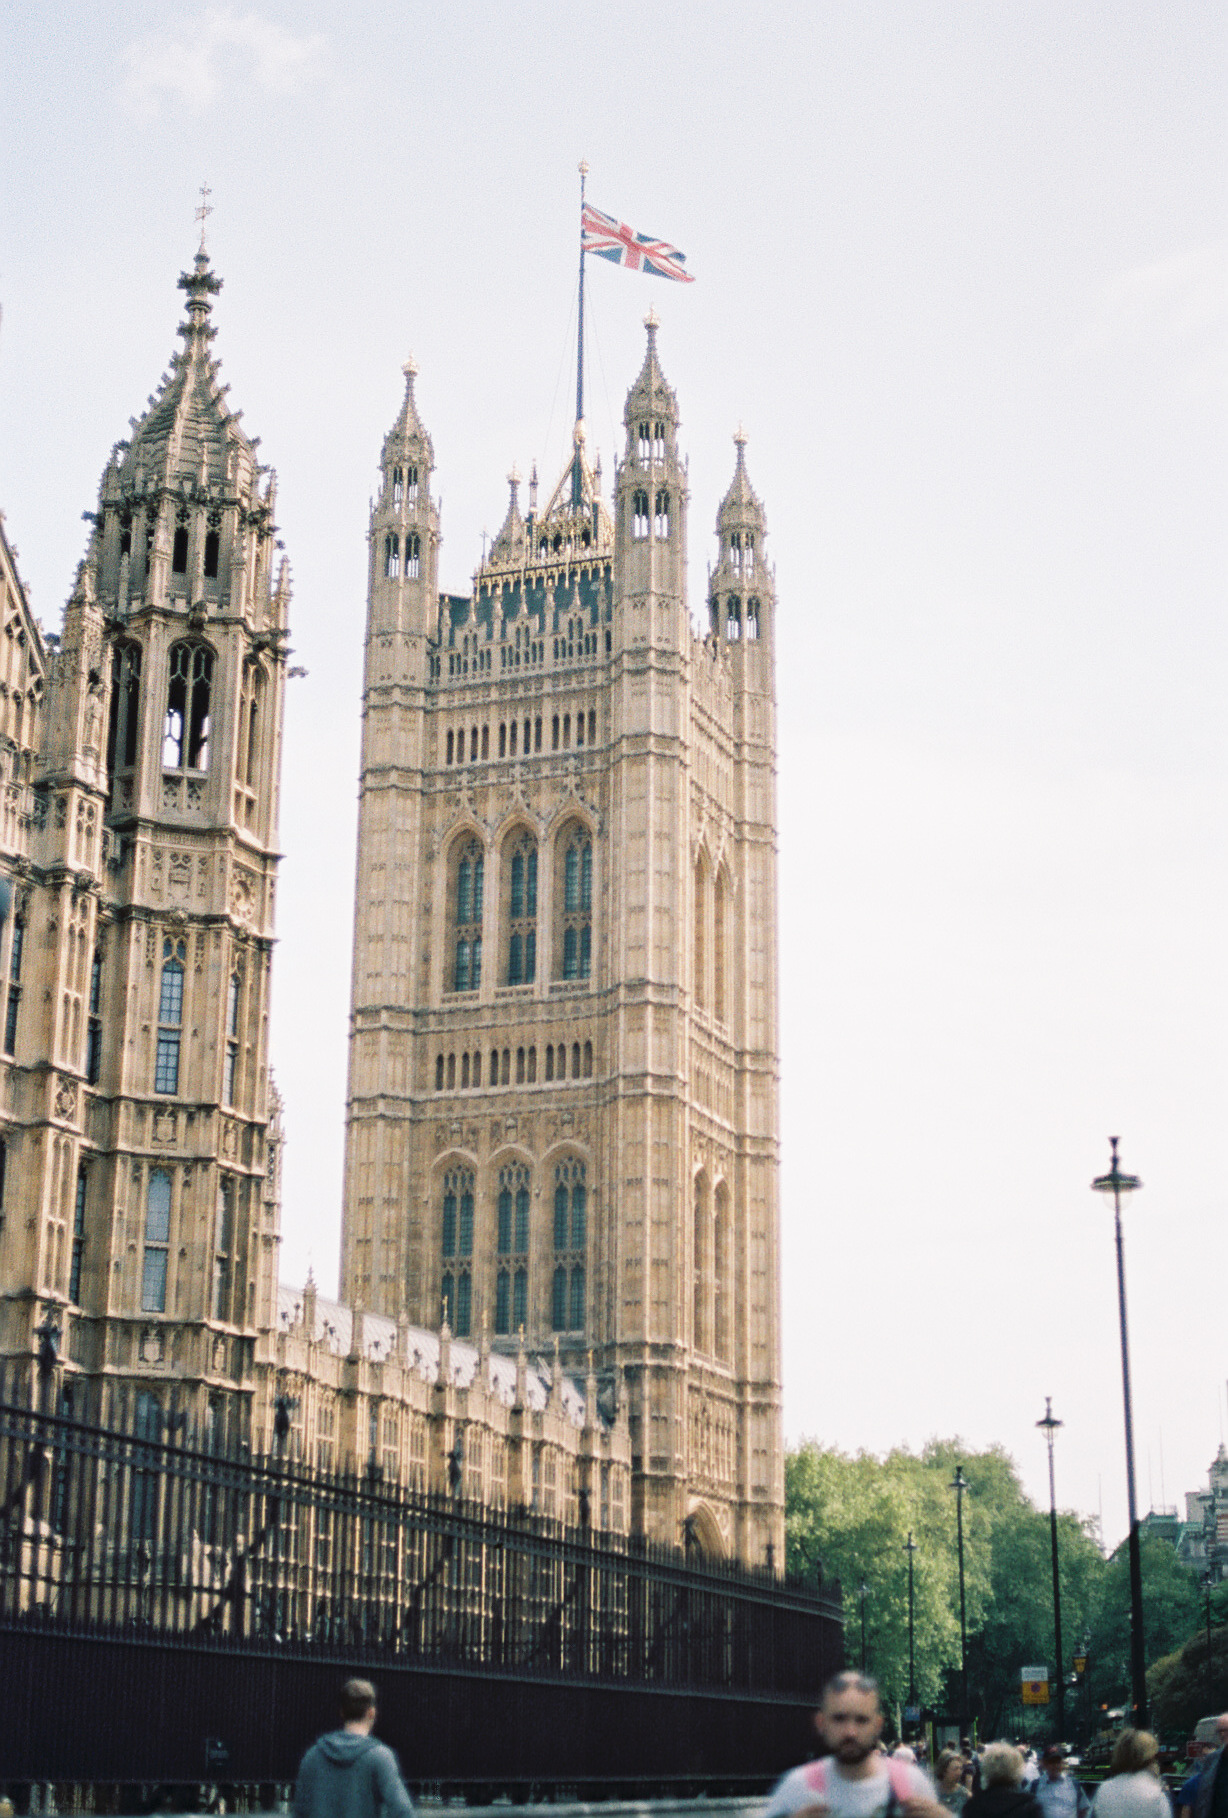 walking-around-westminster-abbey-london-uk-european-honeymoon